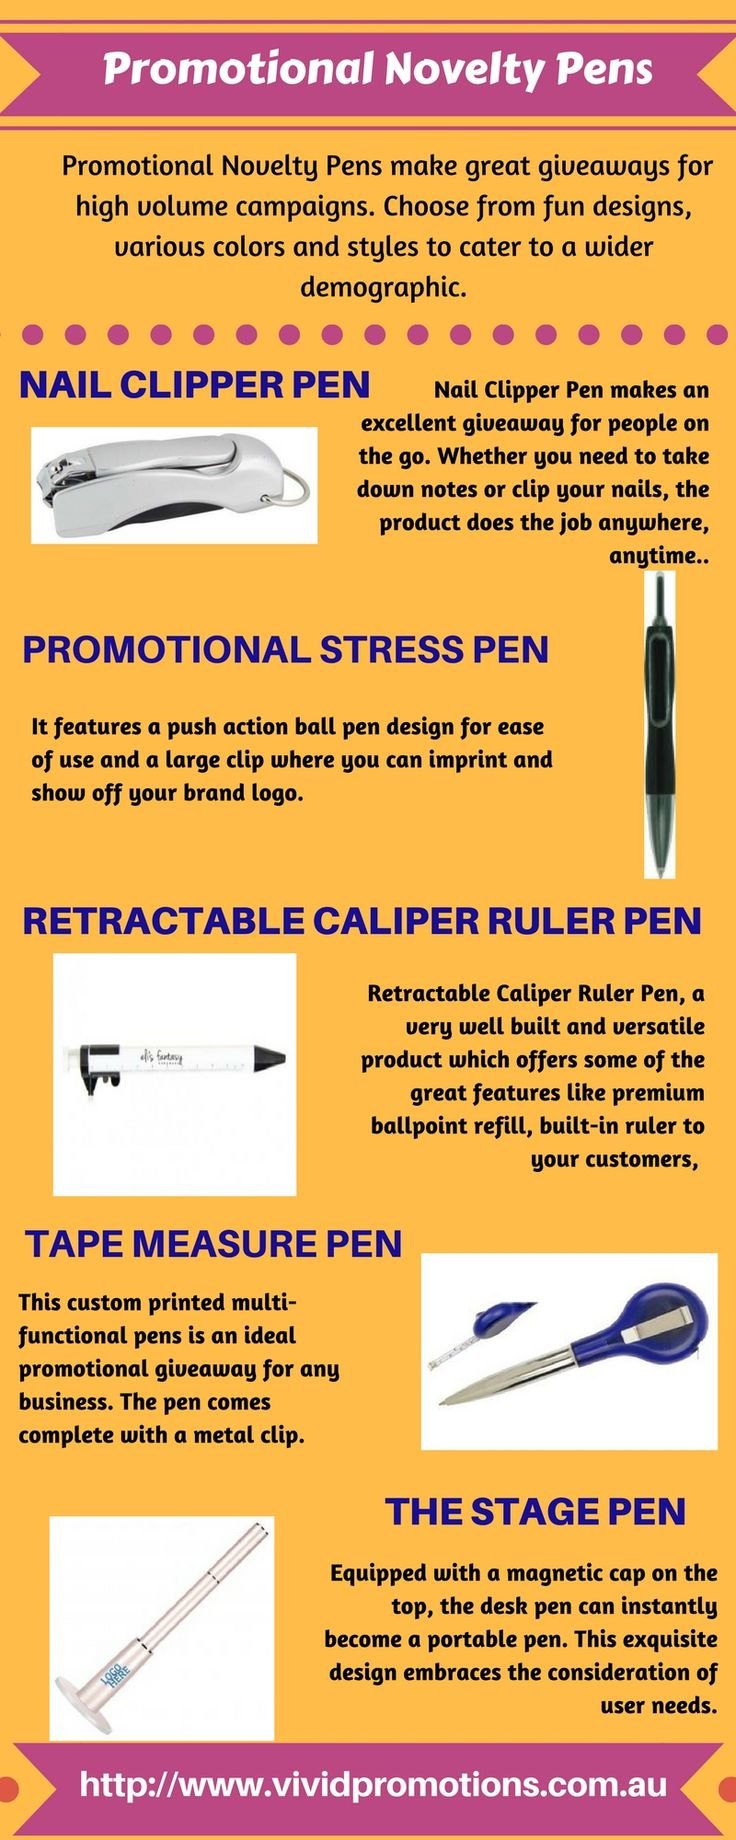 If you are thinking to promote your brand in unique way, have a look at this infographic of custom printed Novelty Pens! These promotional Novely Pens make great giveaways for high volume campaigns. #PromotionalNoveltyPens #PrintedNoveltyPens #CustomprintedPens #EngravedNoveltyPens #PromotionalProducts #VividPromotions